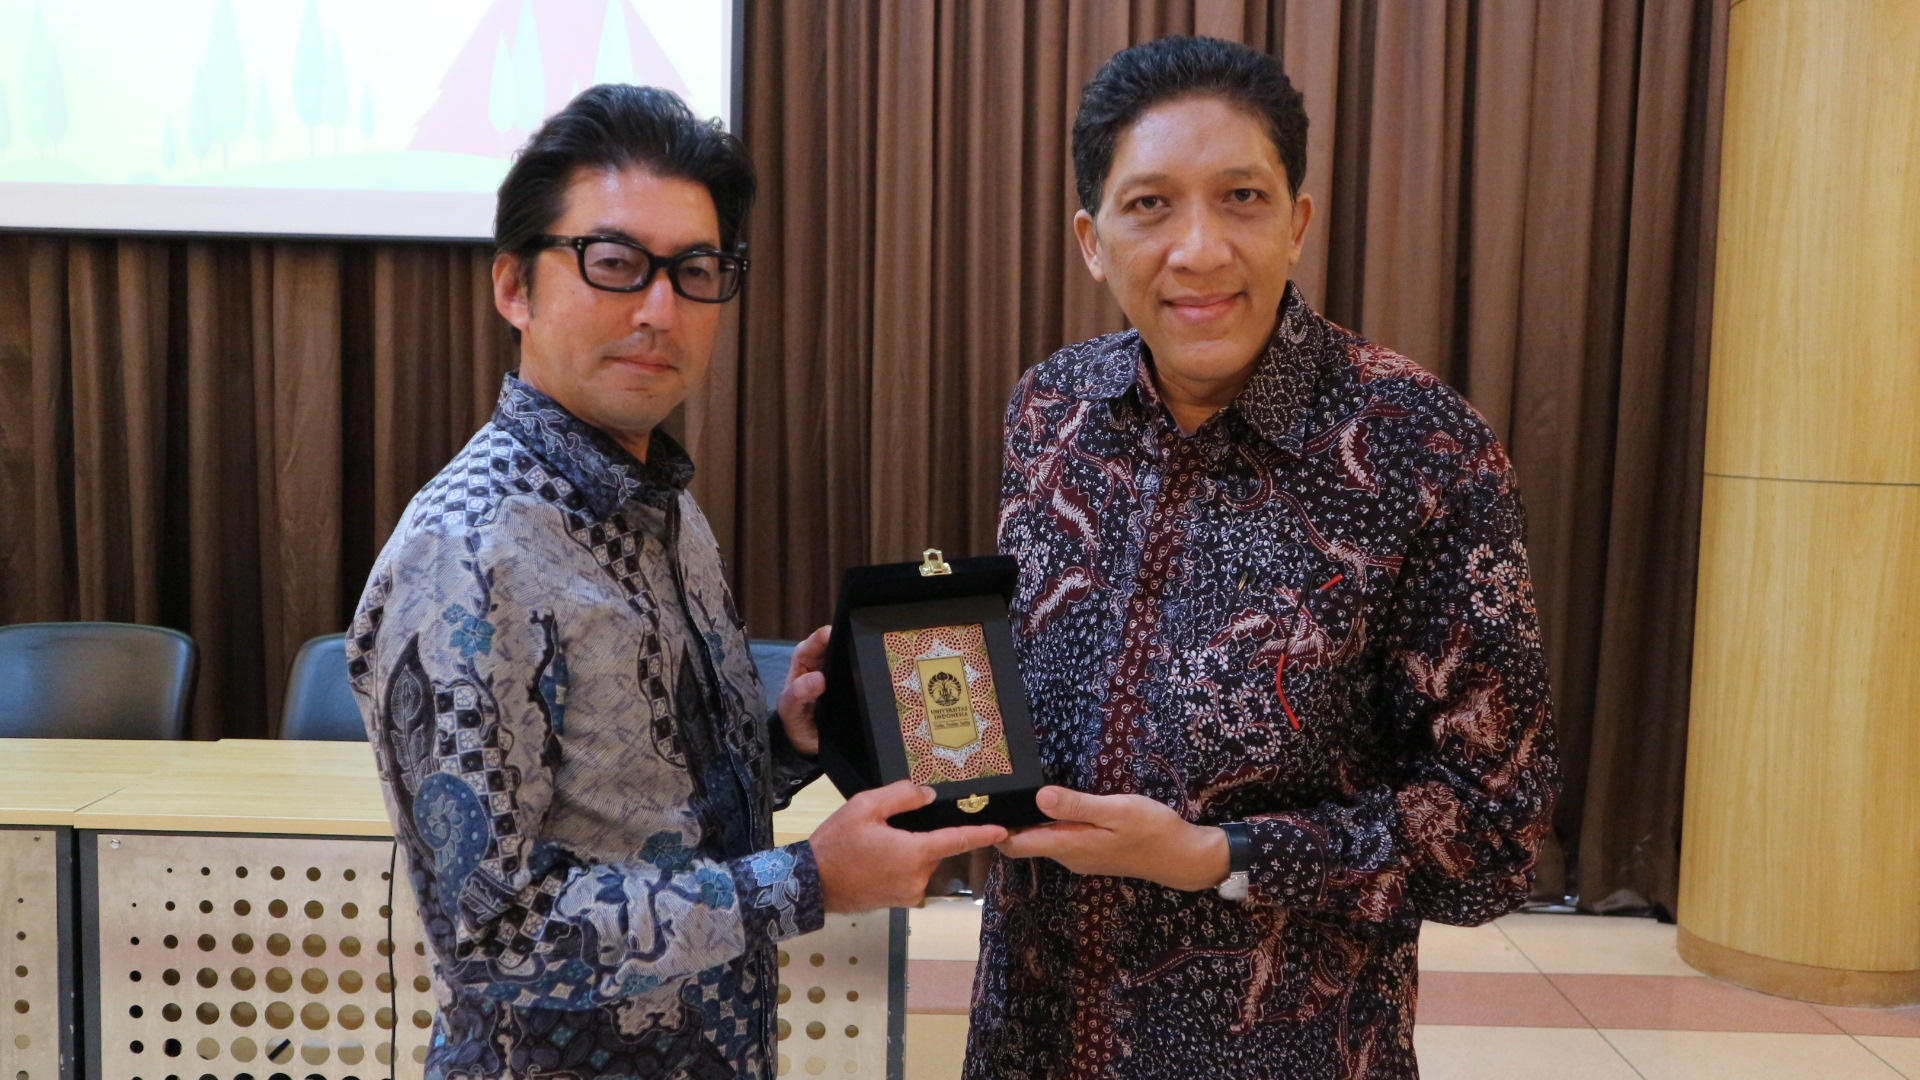 President Director of PT Marubeni Indonesia Mr. Tomofumi Fukuda and Vice Rector of Student Affairs of University of Indonesia Prof. Dr. Bambang Wibawarta, S.S., M.A, during souvenir exchange